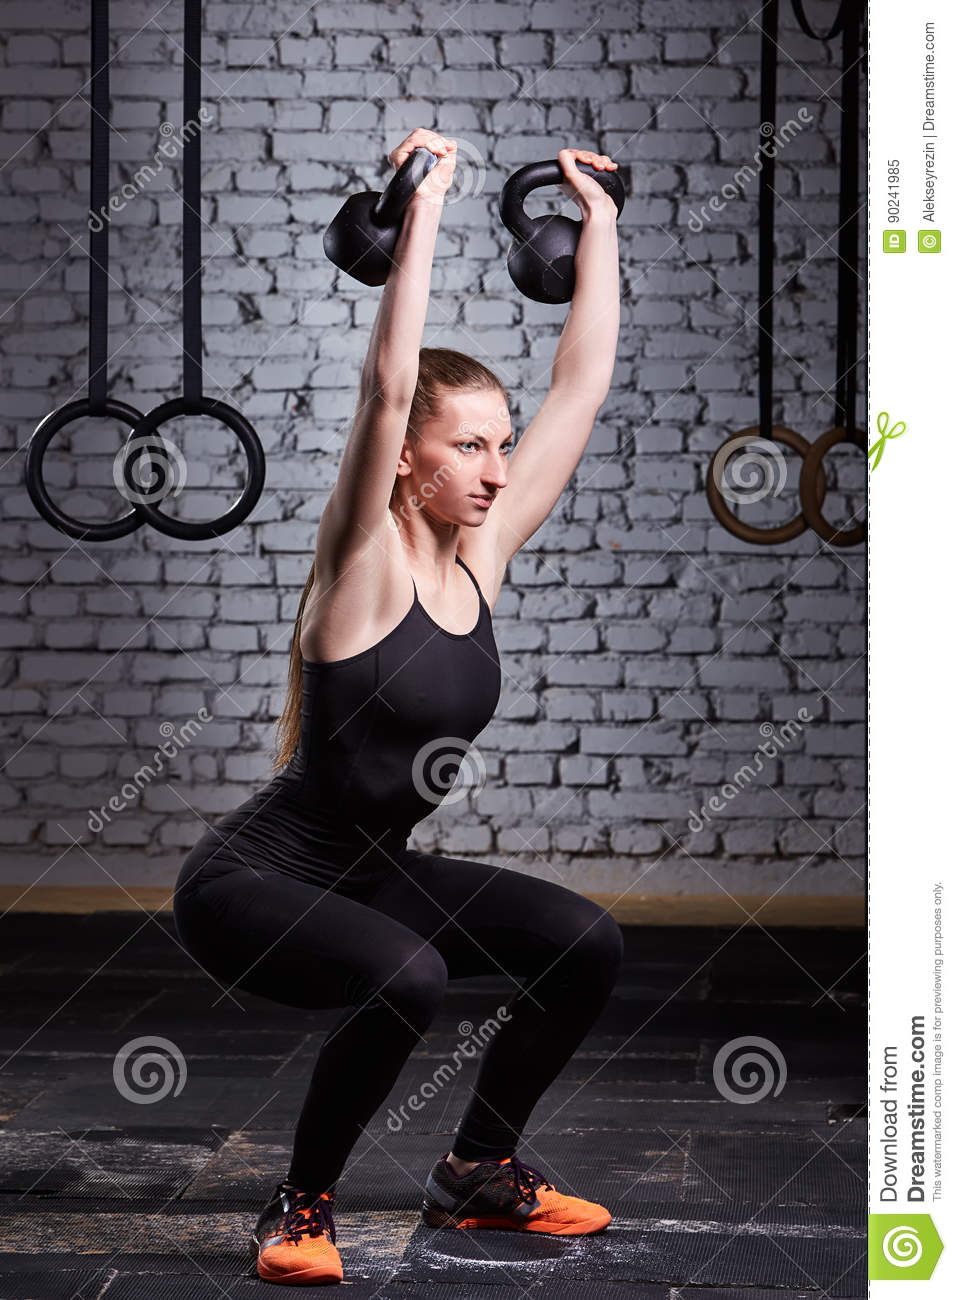 Young fitness woman doing crossfit workout with kettlebell against brick wall.